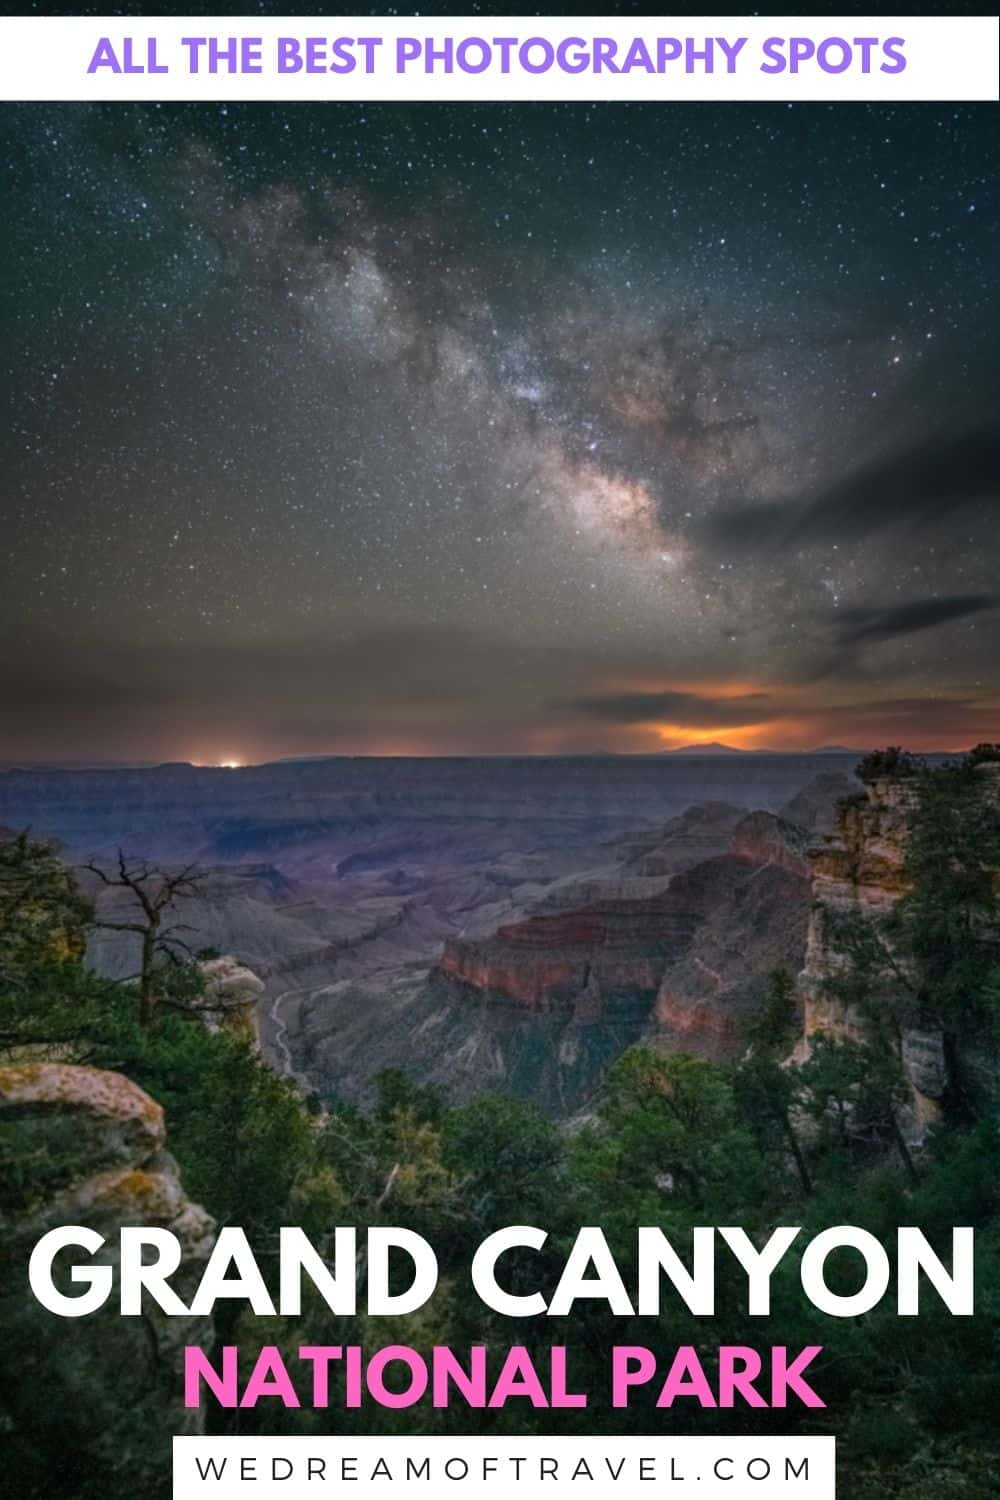 Discover the best locations for Grand Canyon photography, including where and when to photograph sunset, sunrise, and Milky Way night skies.